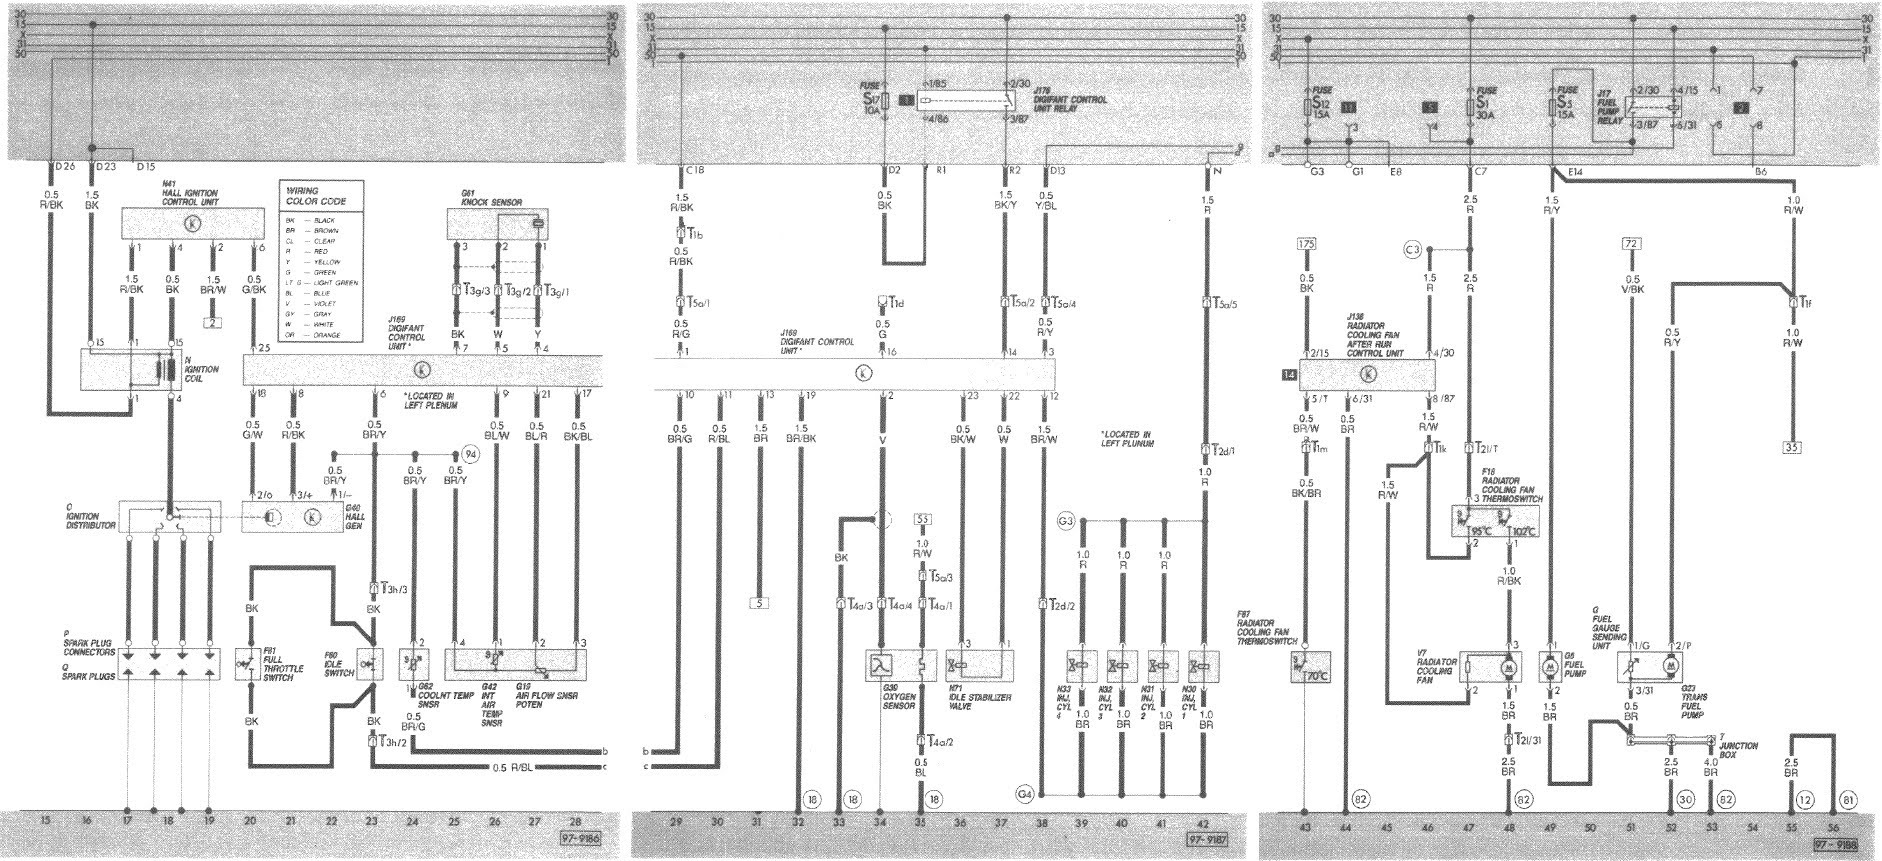 g2pbecu pre90 vw golf mk2 wiring diagram vw wiring diagrams instruction vw mk1 wiring diagram at creativeand.co